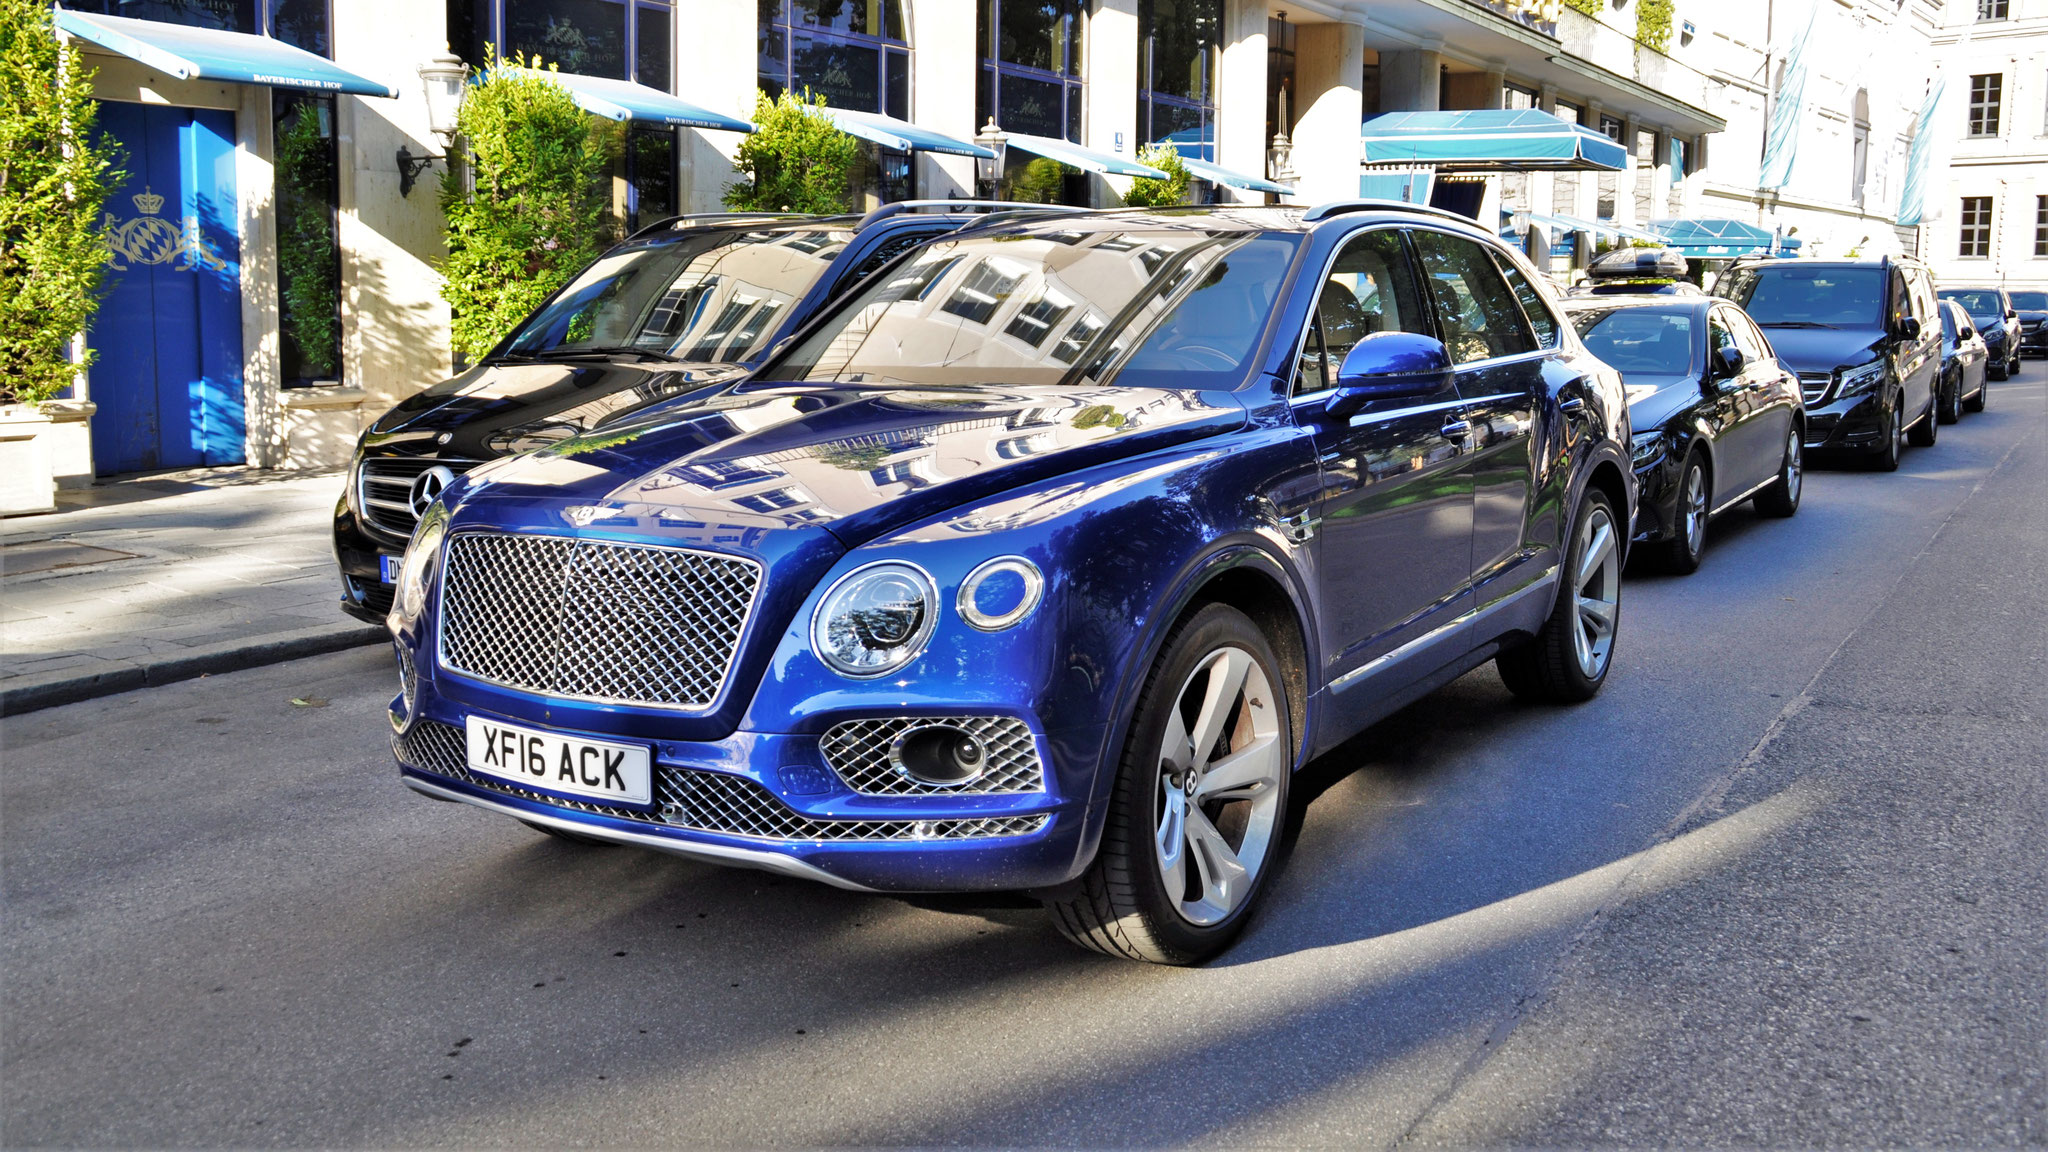 Bentley Bentayga - XF16-ACK (GB)